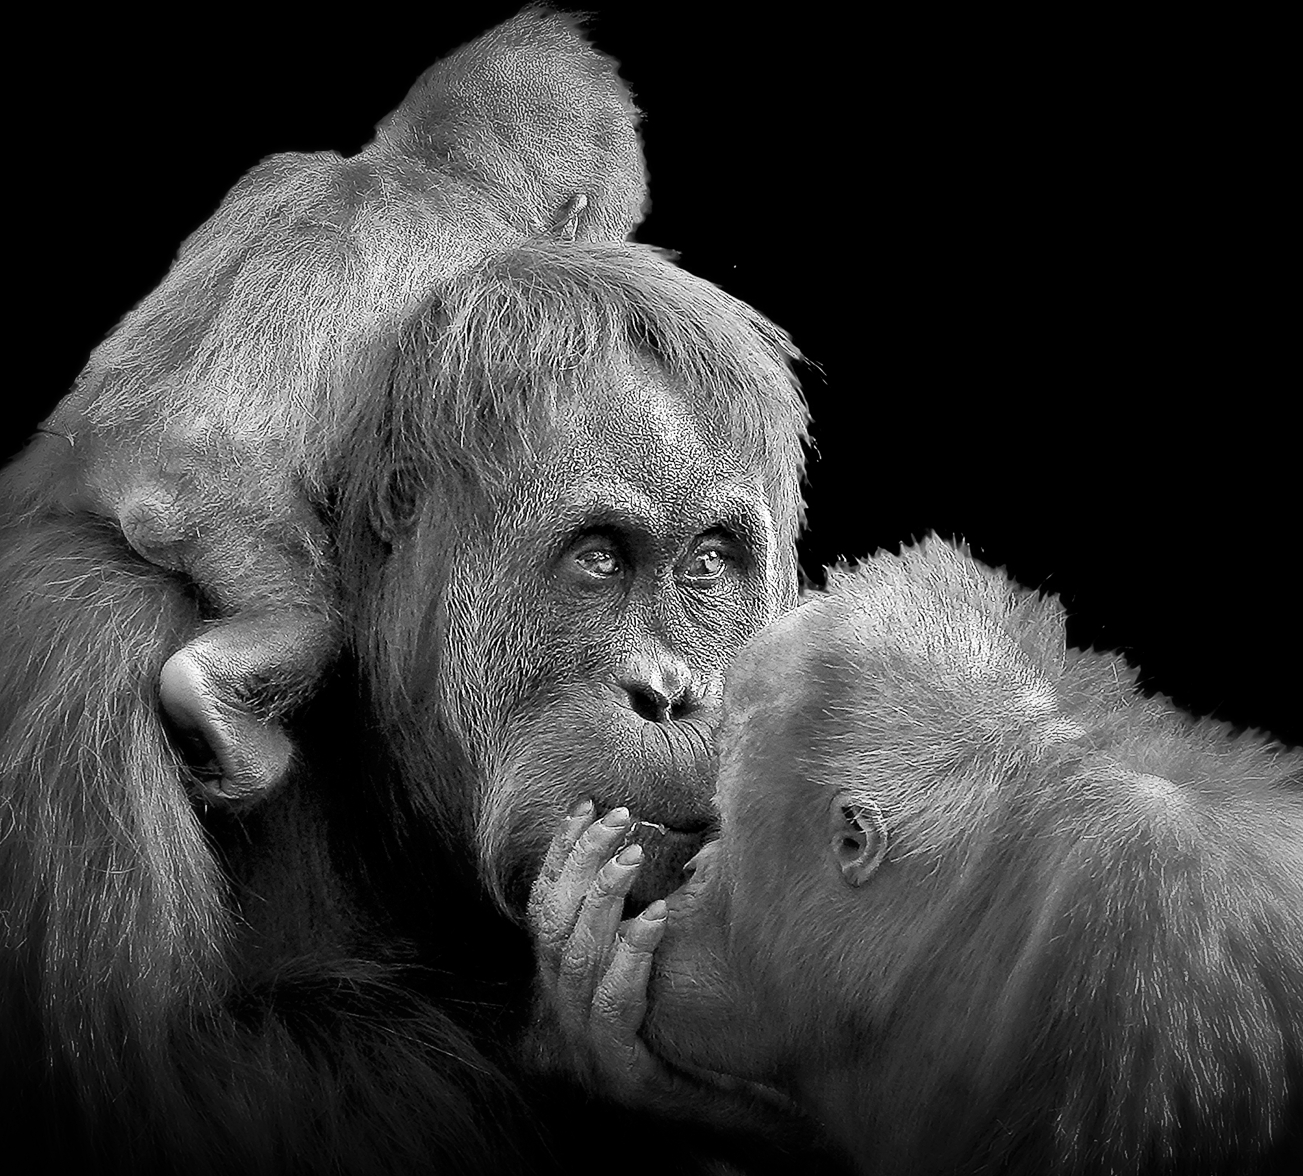 Orangutan mother and kids. By Patrick Bouquet, Chantilly